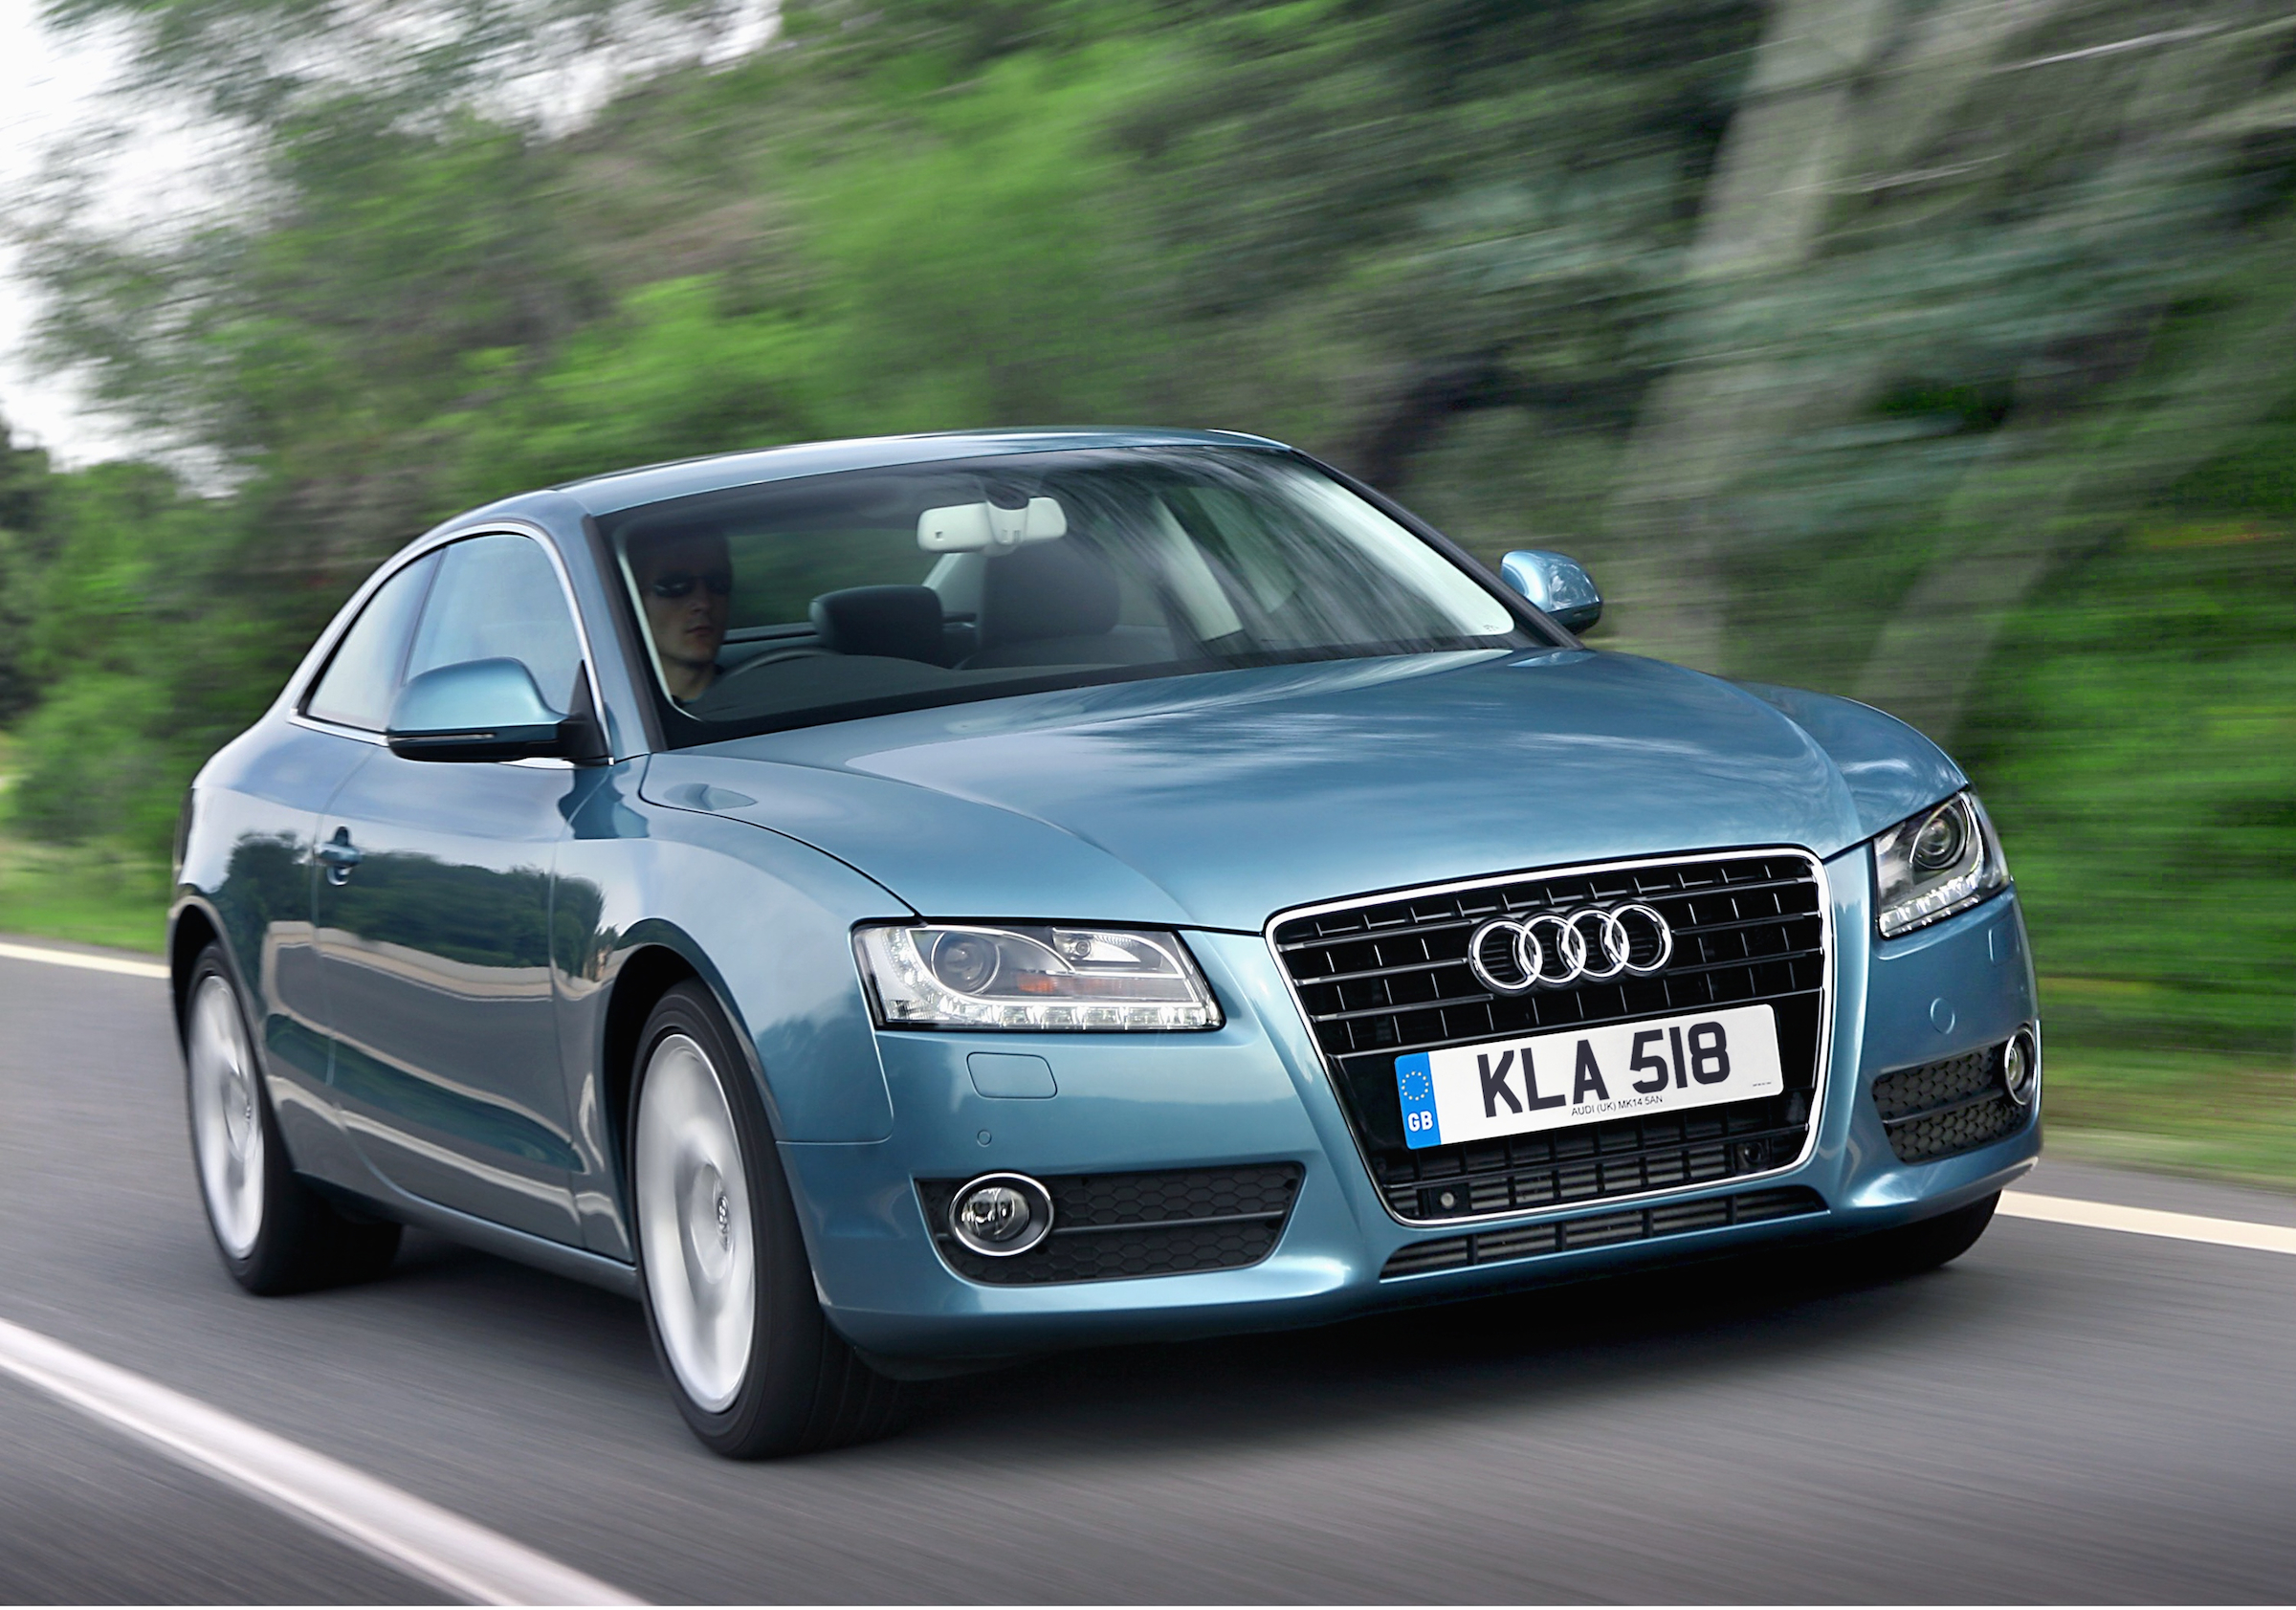 Used Audi A5 Coupe Buying Guide 2007 2016 Mk1 Carbuyer